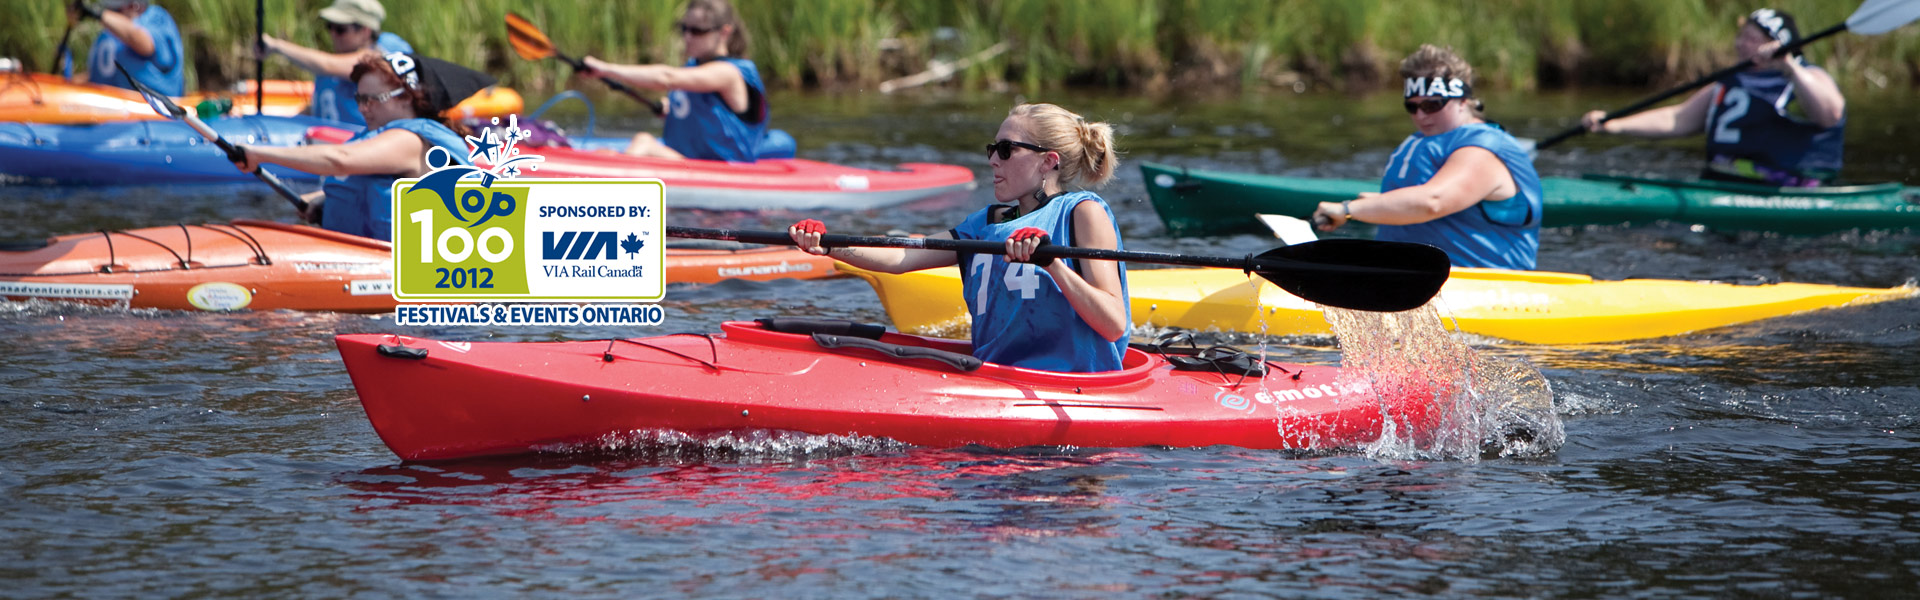 <h2>August 24-25, 2013</h2> Join us for the 5th Annual Great Canadian Kayak Challenge and Festival!